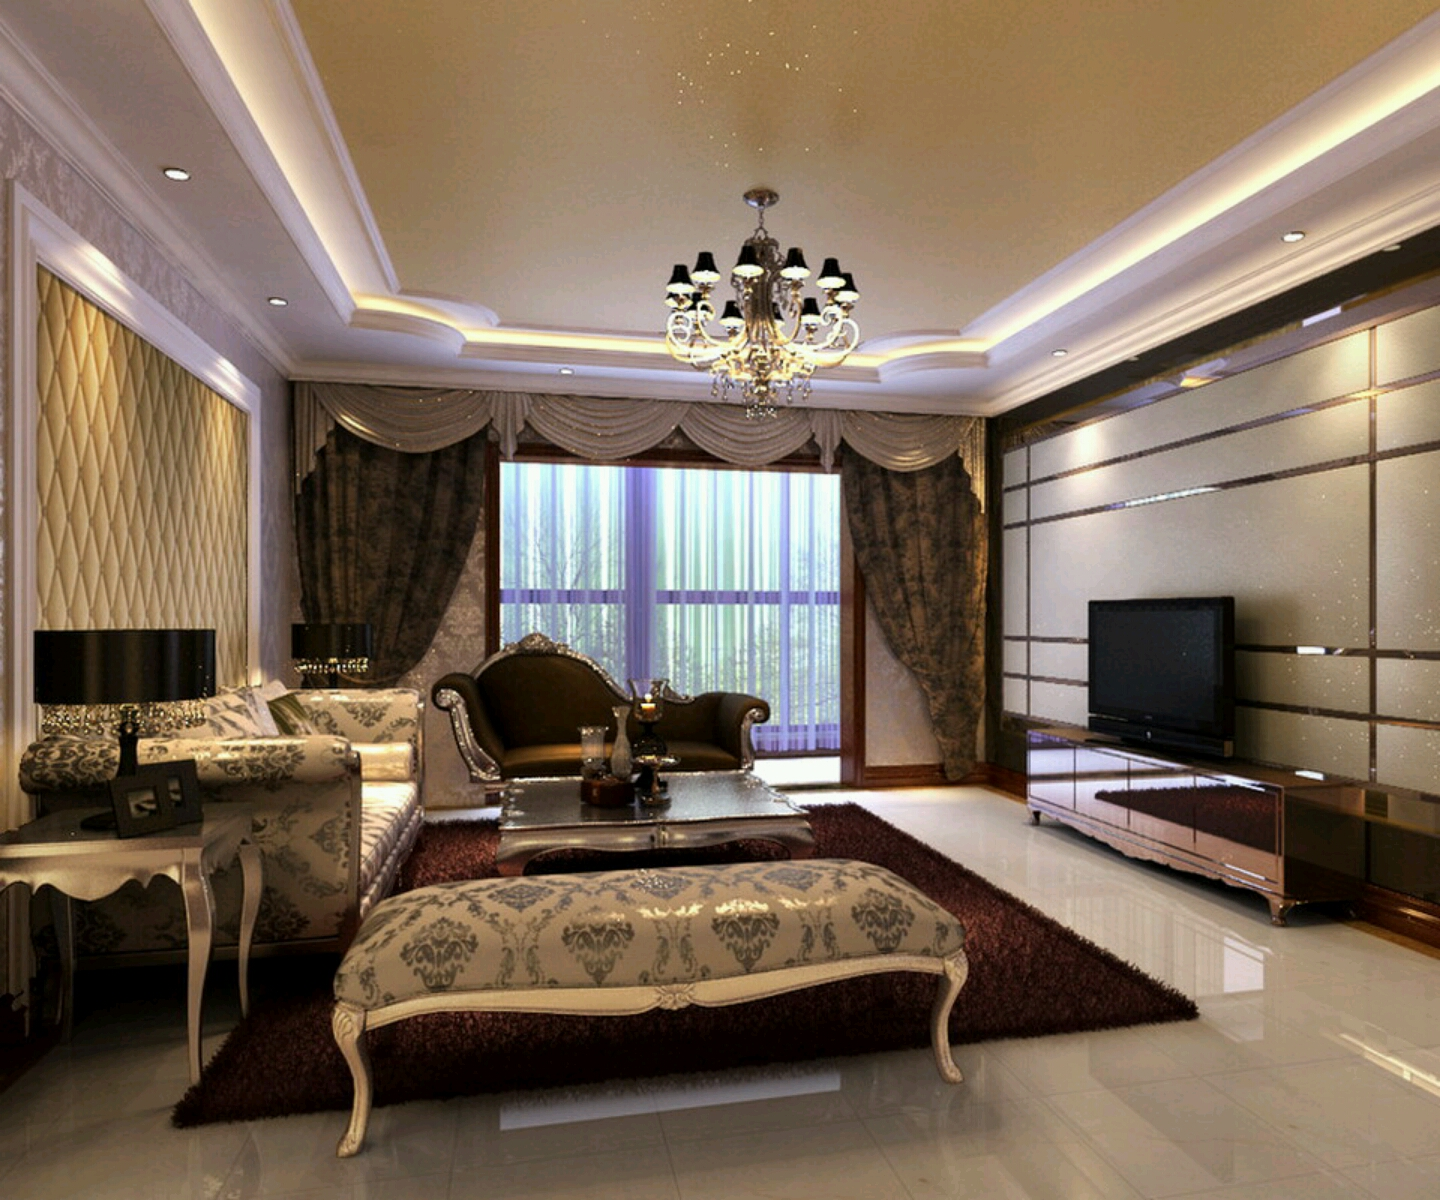 Interior decorating ideas living rooms dream house for Interior design ideas white living room